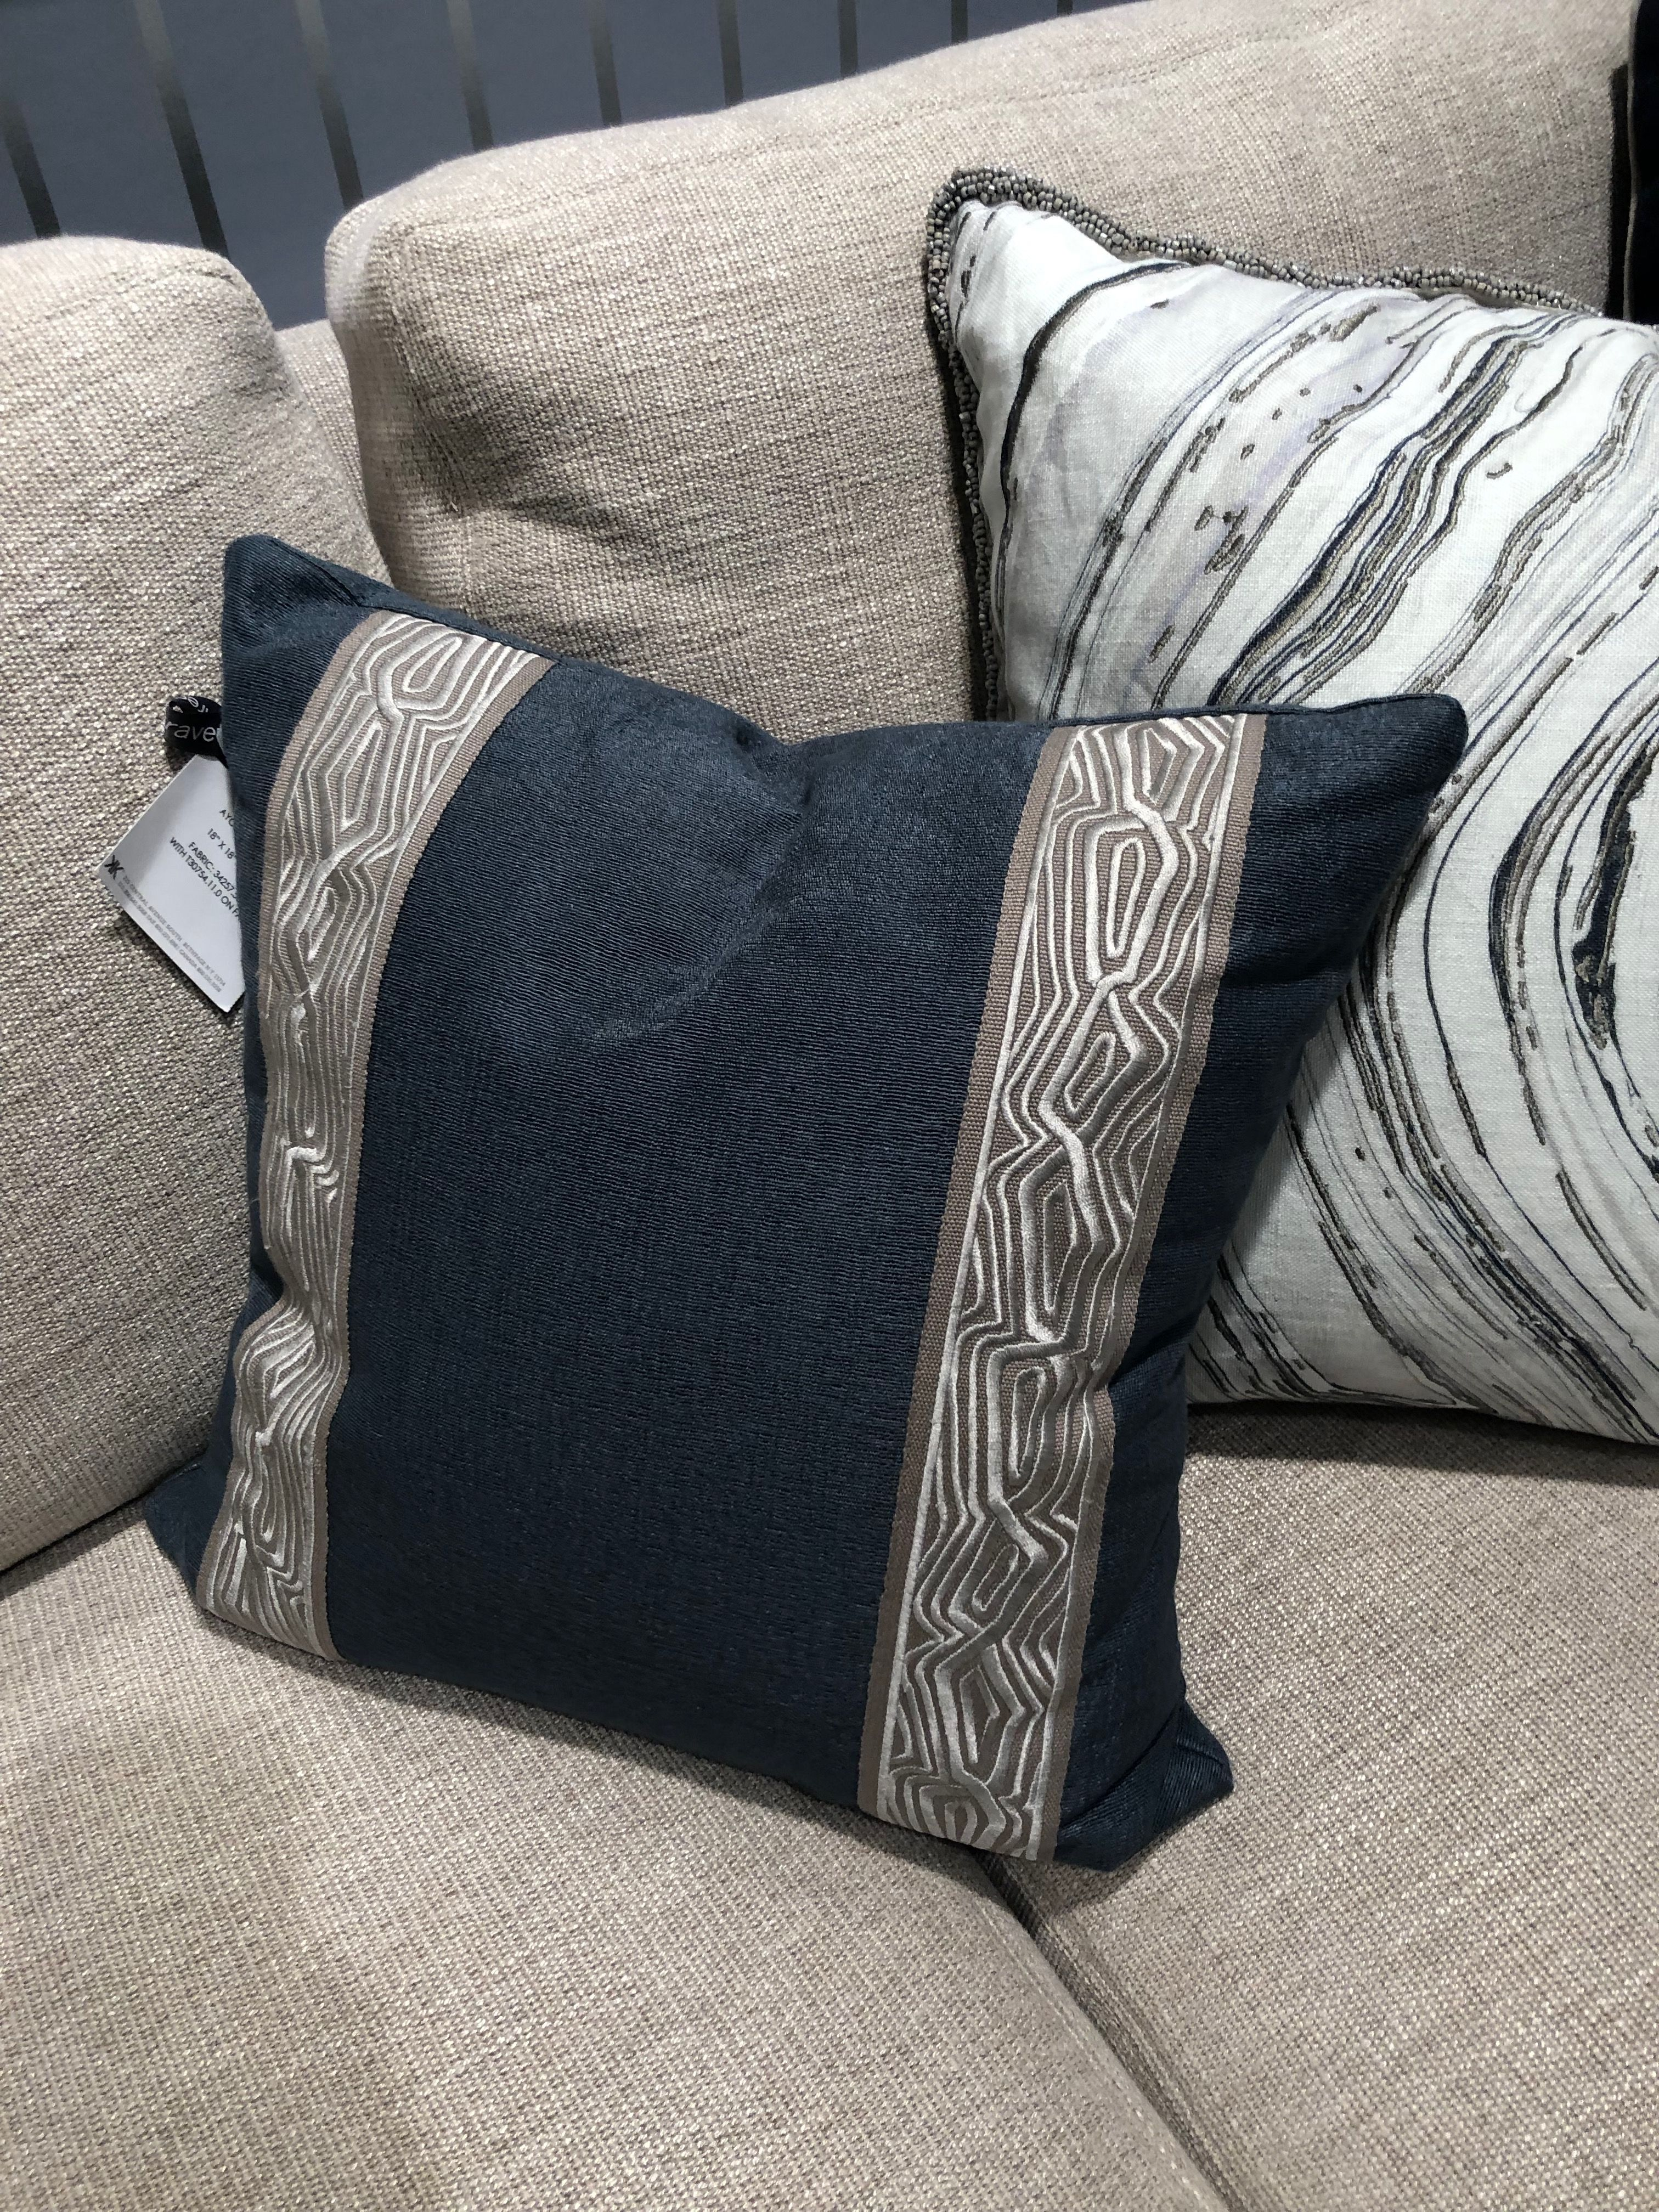 Trim Pillows Throw Pillows Bed